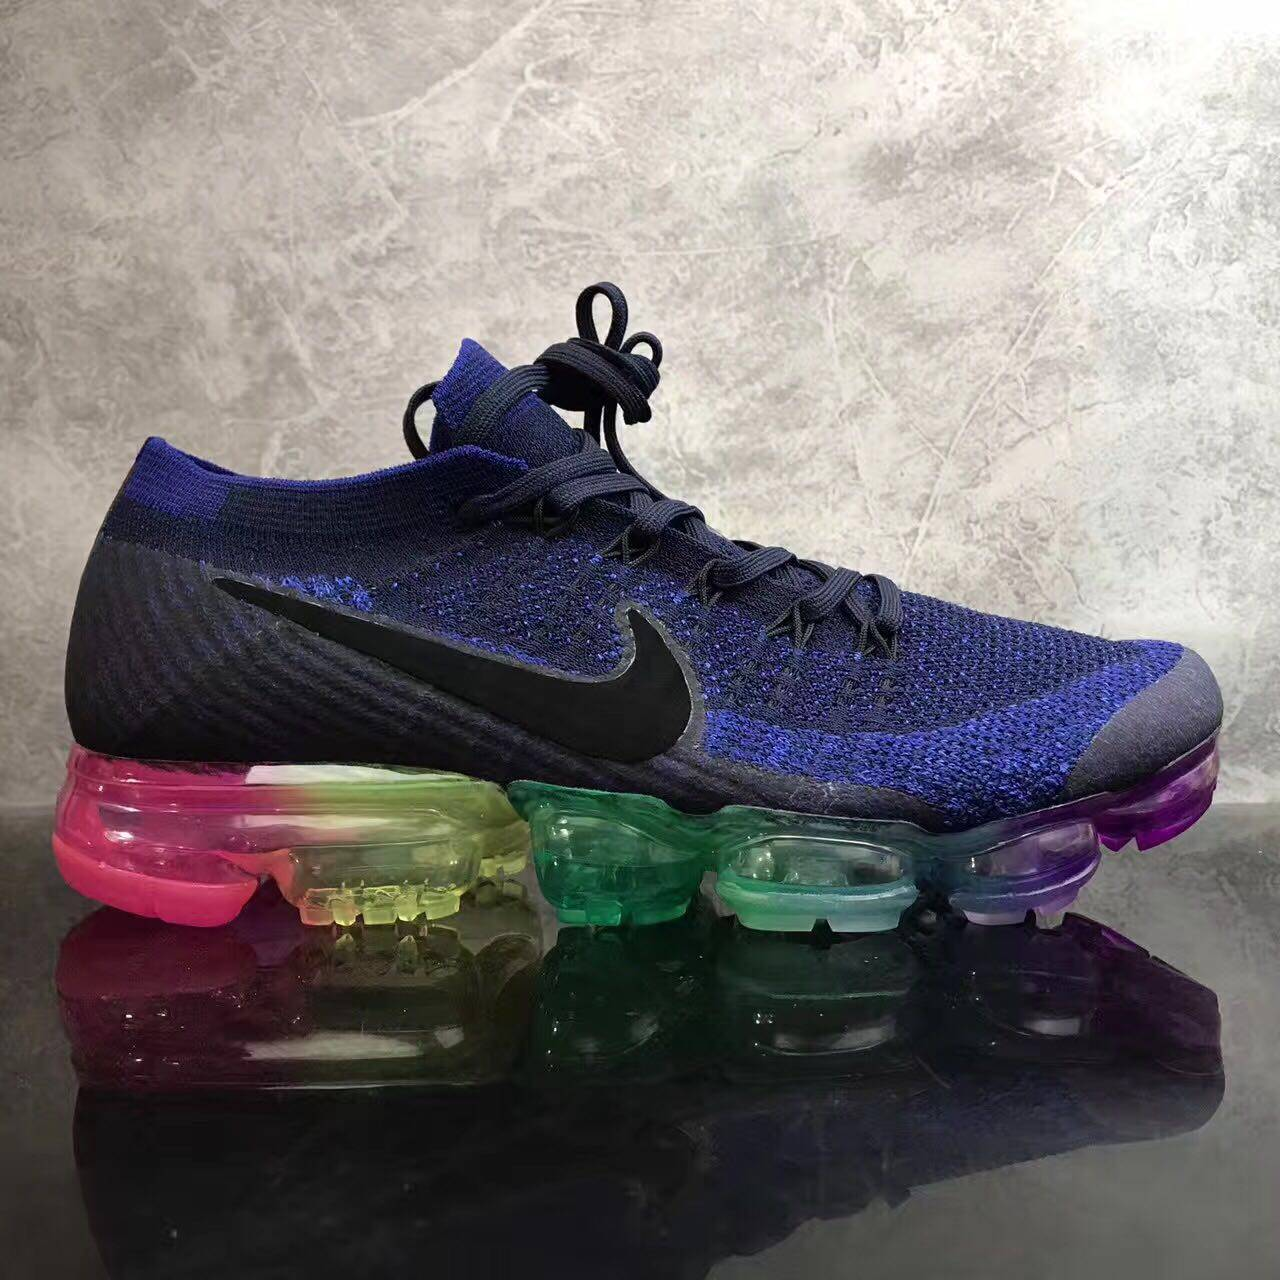 56de3961b10 NIKE AIR VAPORMAX FLYKNIT - BE TRUE - 883274-400 FROM NIKE FACTORY DIRECTLY  LIMITED PAIRS